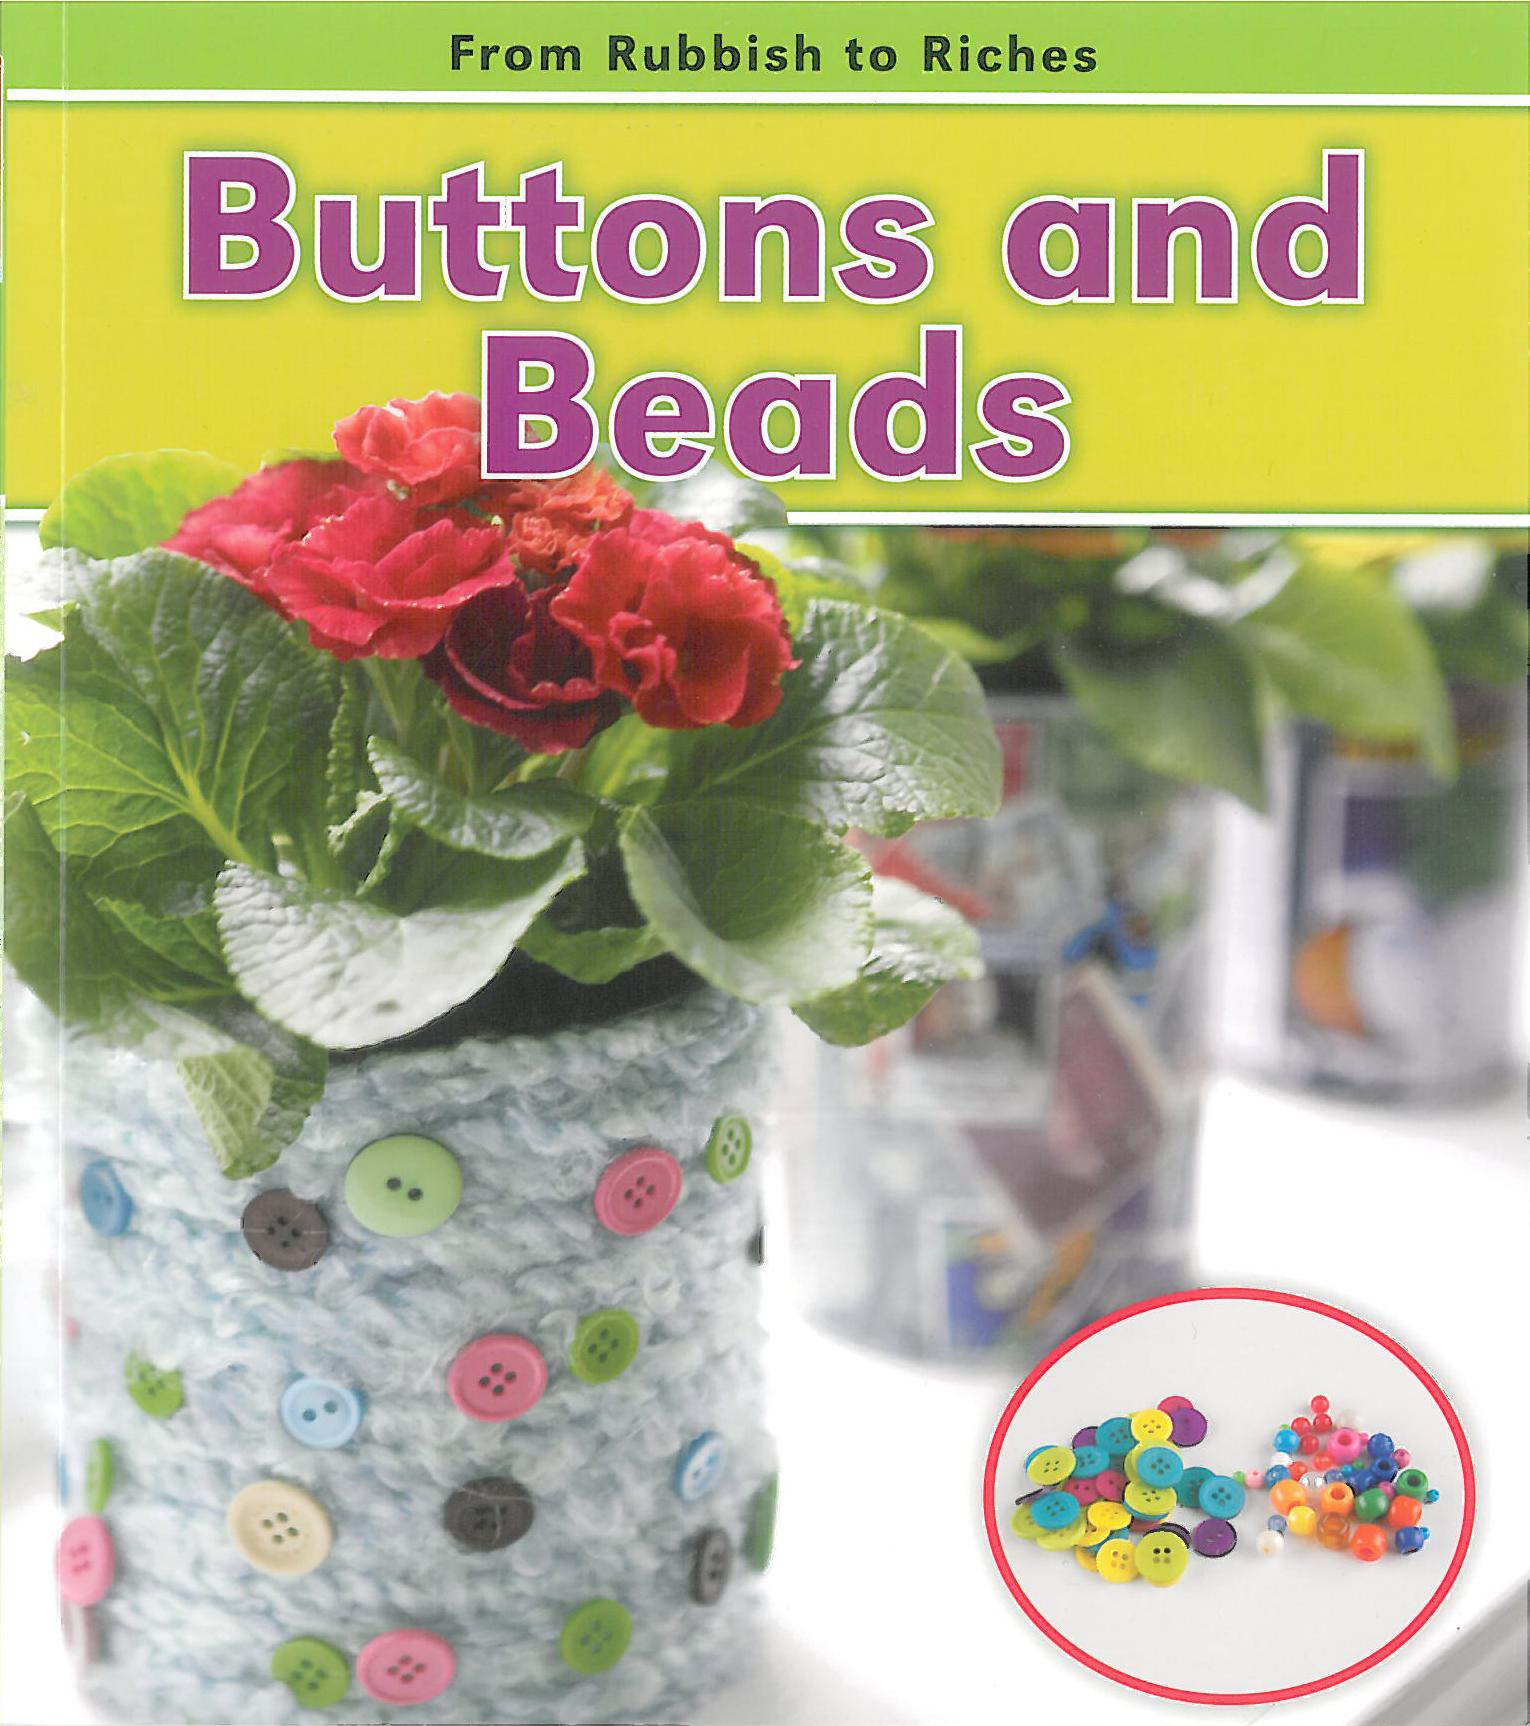 From Rubbish to Riches - Buttons and Beads